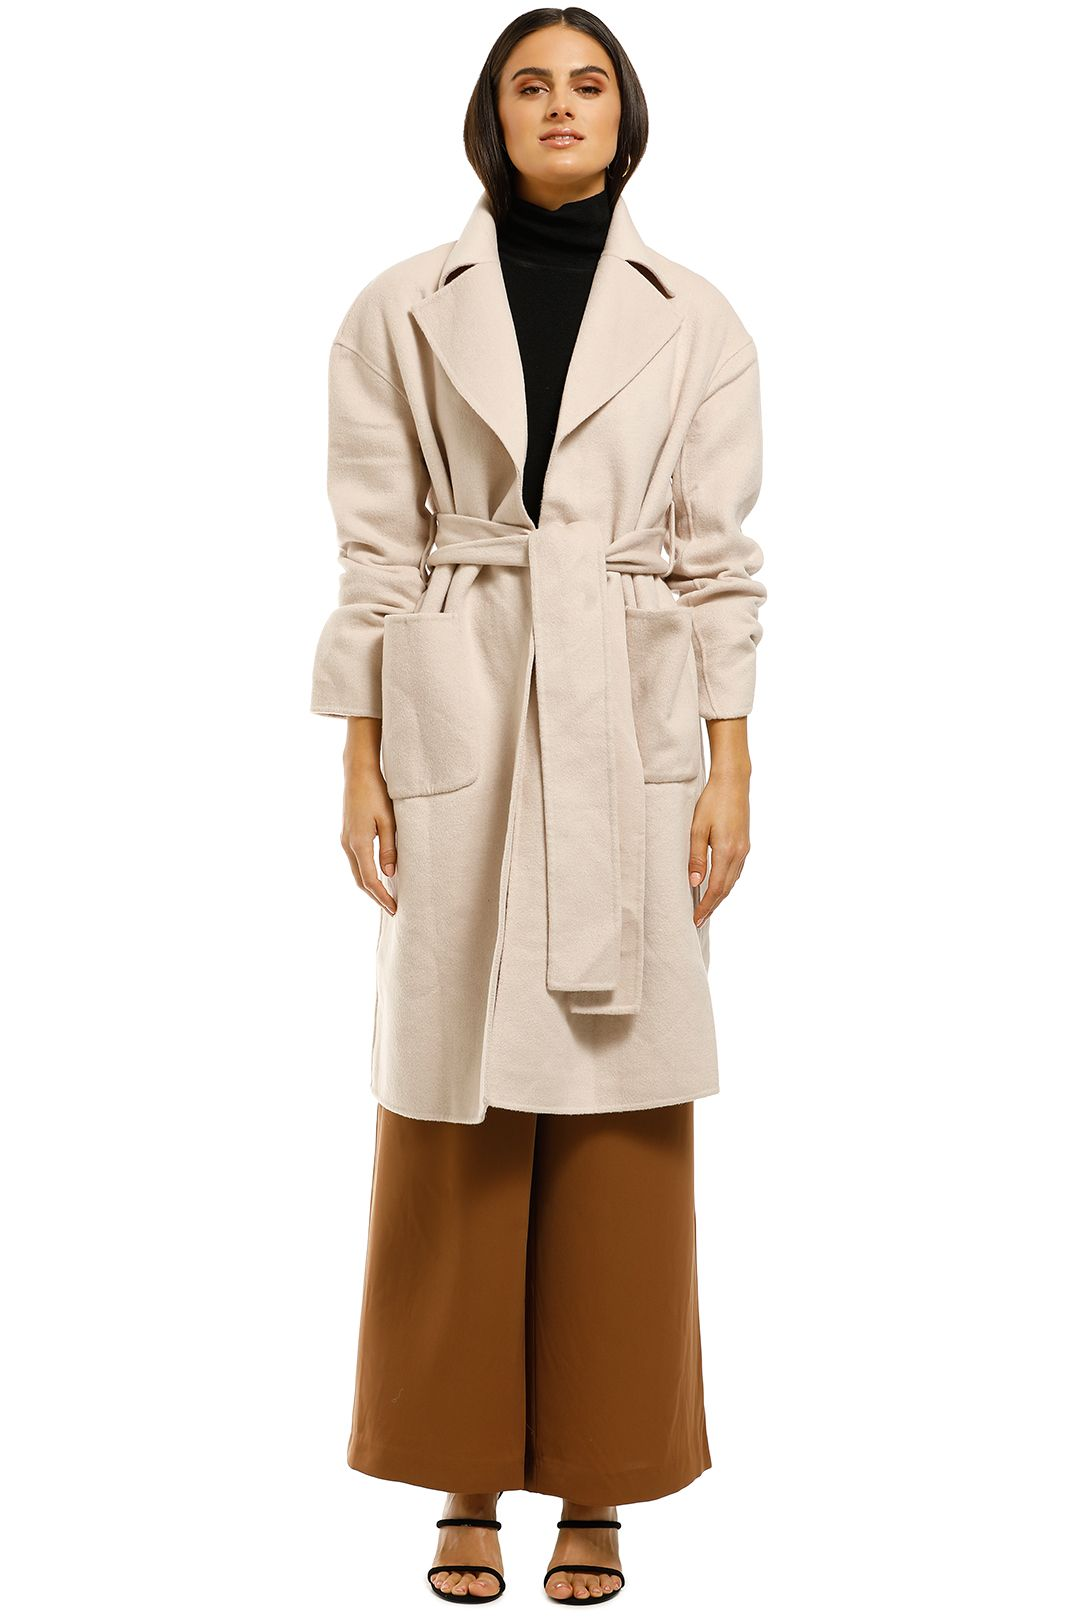 Misha-Collection-Haillie-Coat-Beige-Front